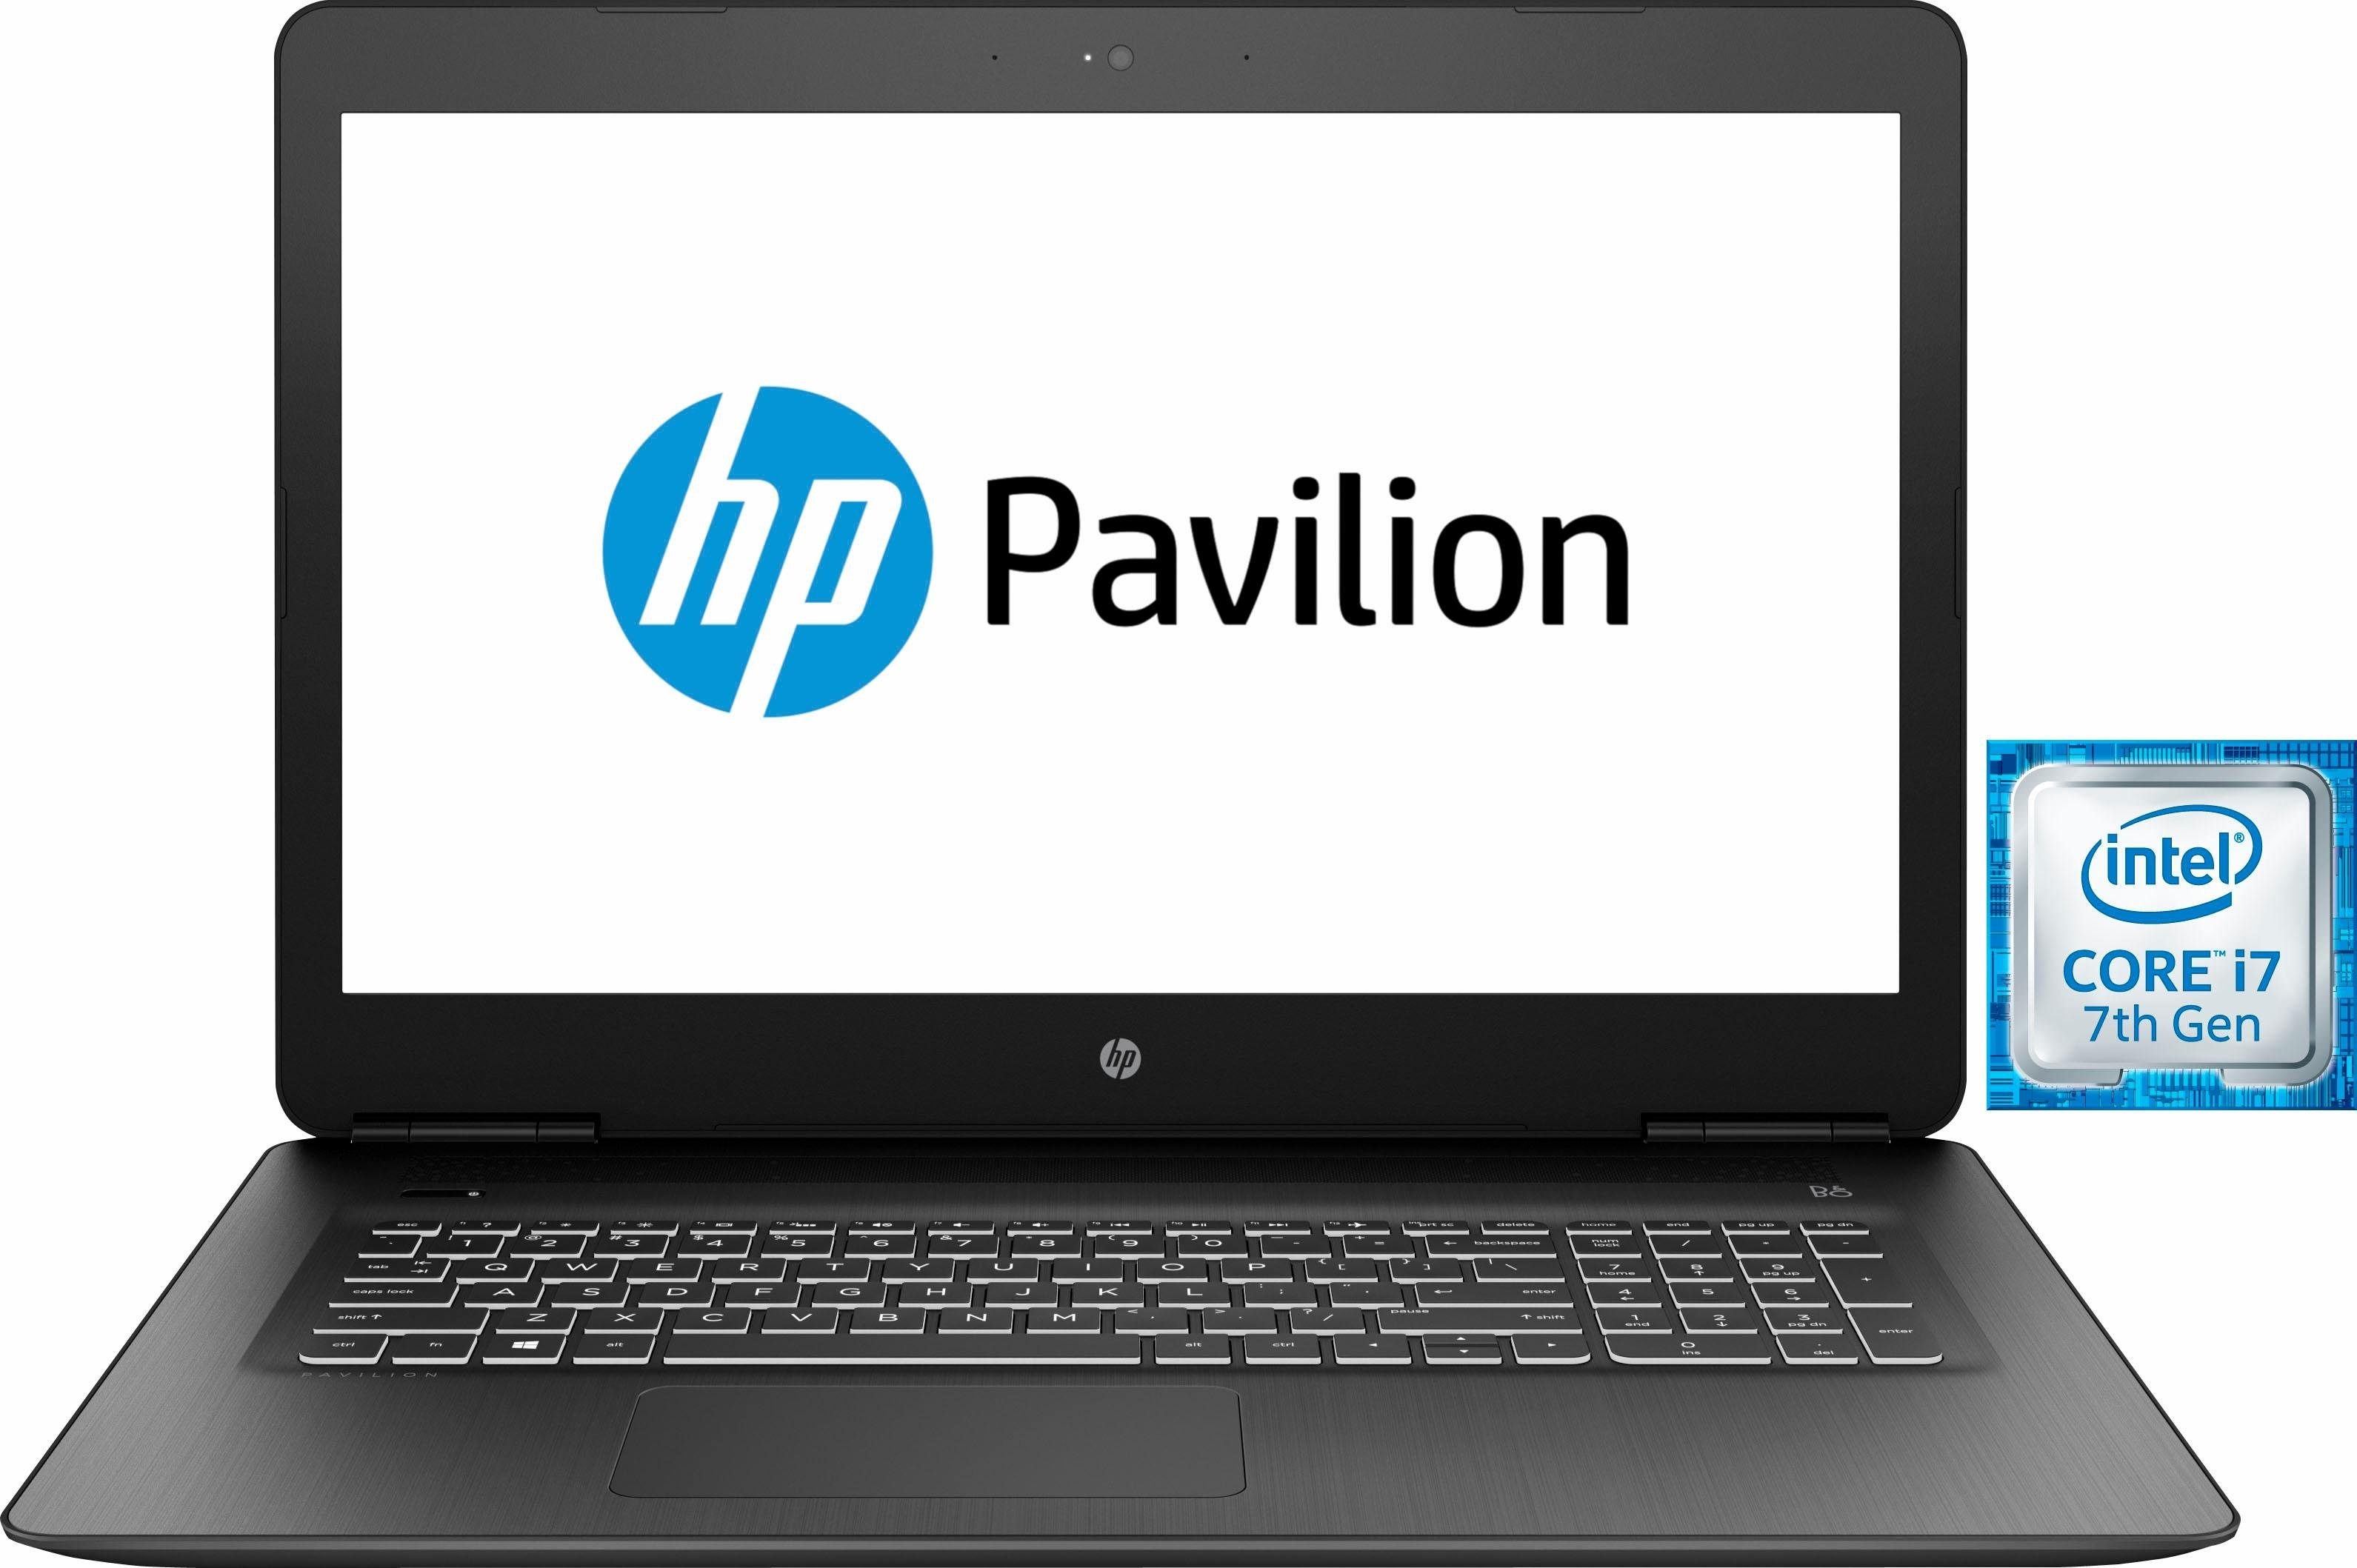 HP Pavilion Power 17-ab320ng Notebook (43,9 cm/17,3 Zoll, Intel Core i7, 1000 GB HDD, 256 GB SSD)